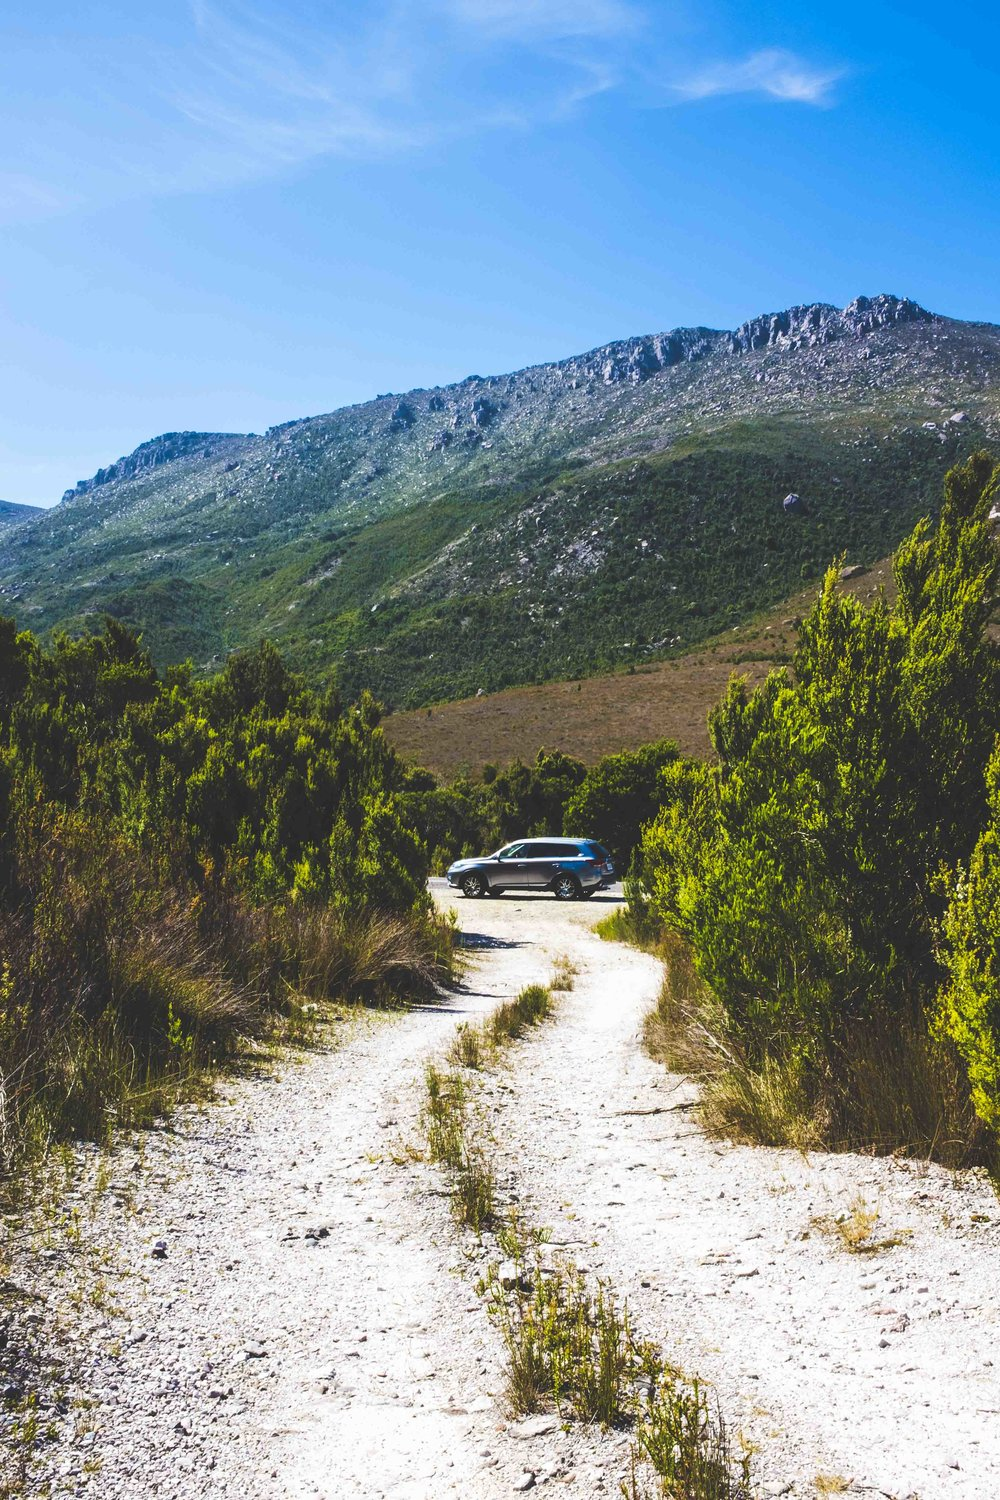 Lots of roads are not paved in Tasmania. Photo: Marine Raynard